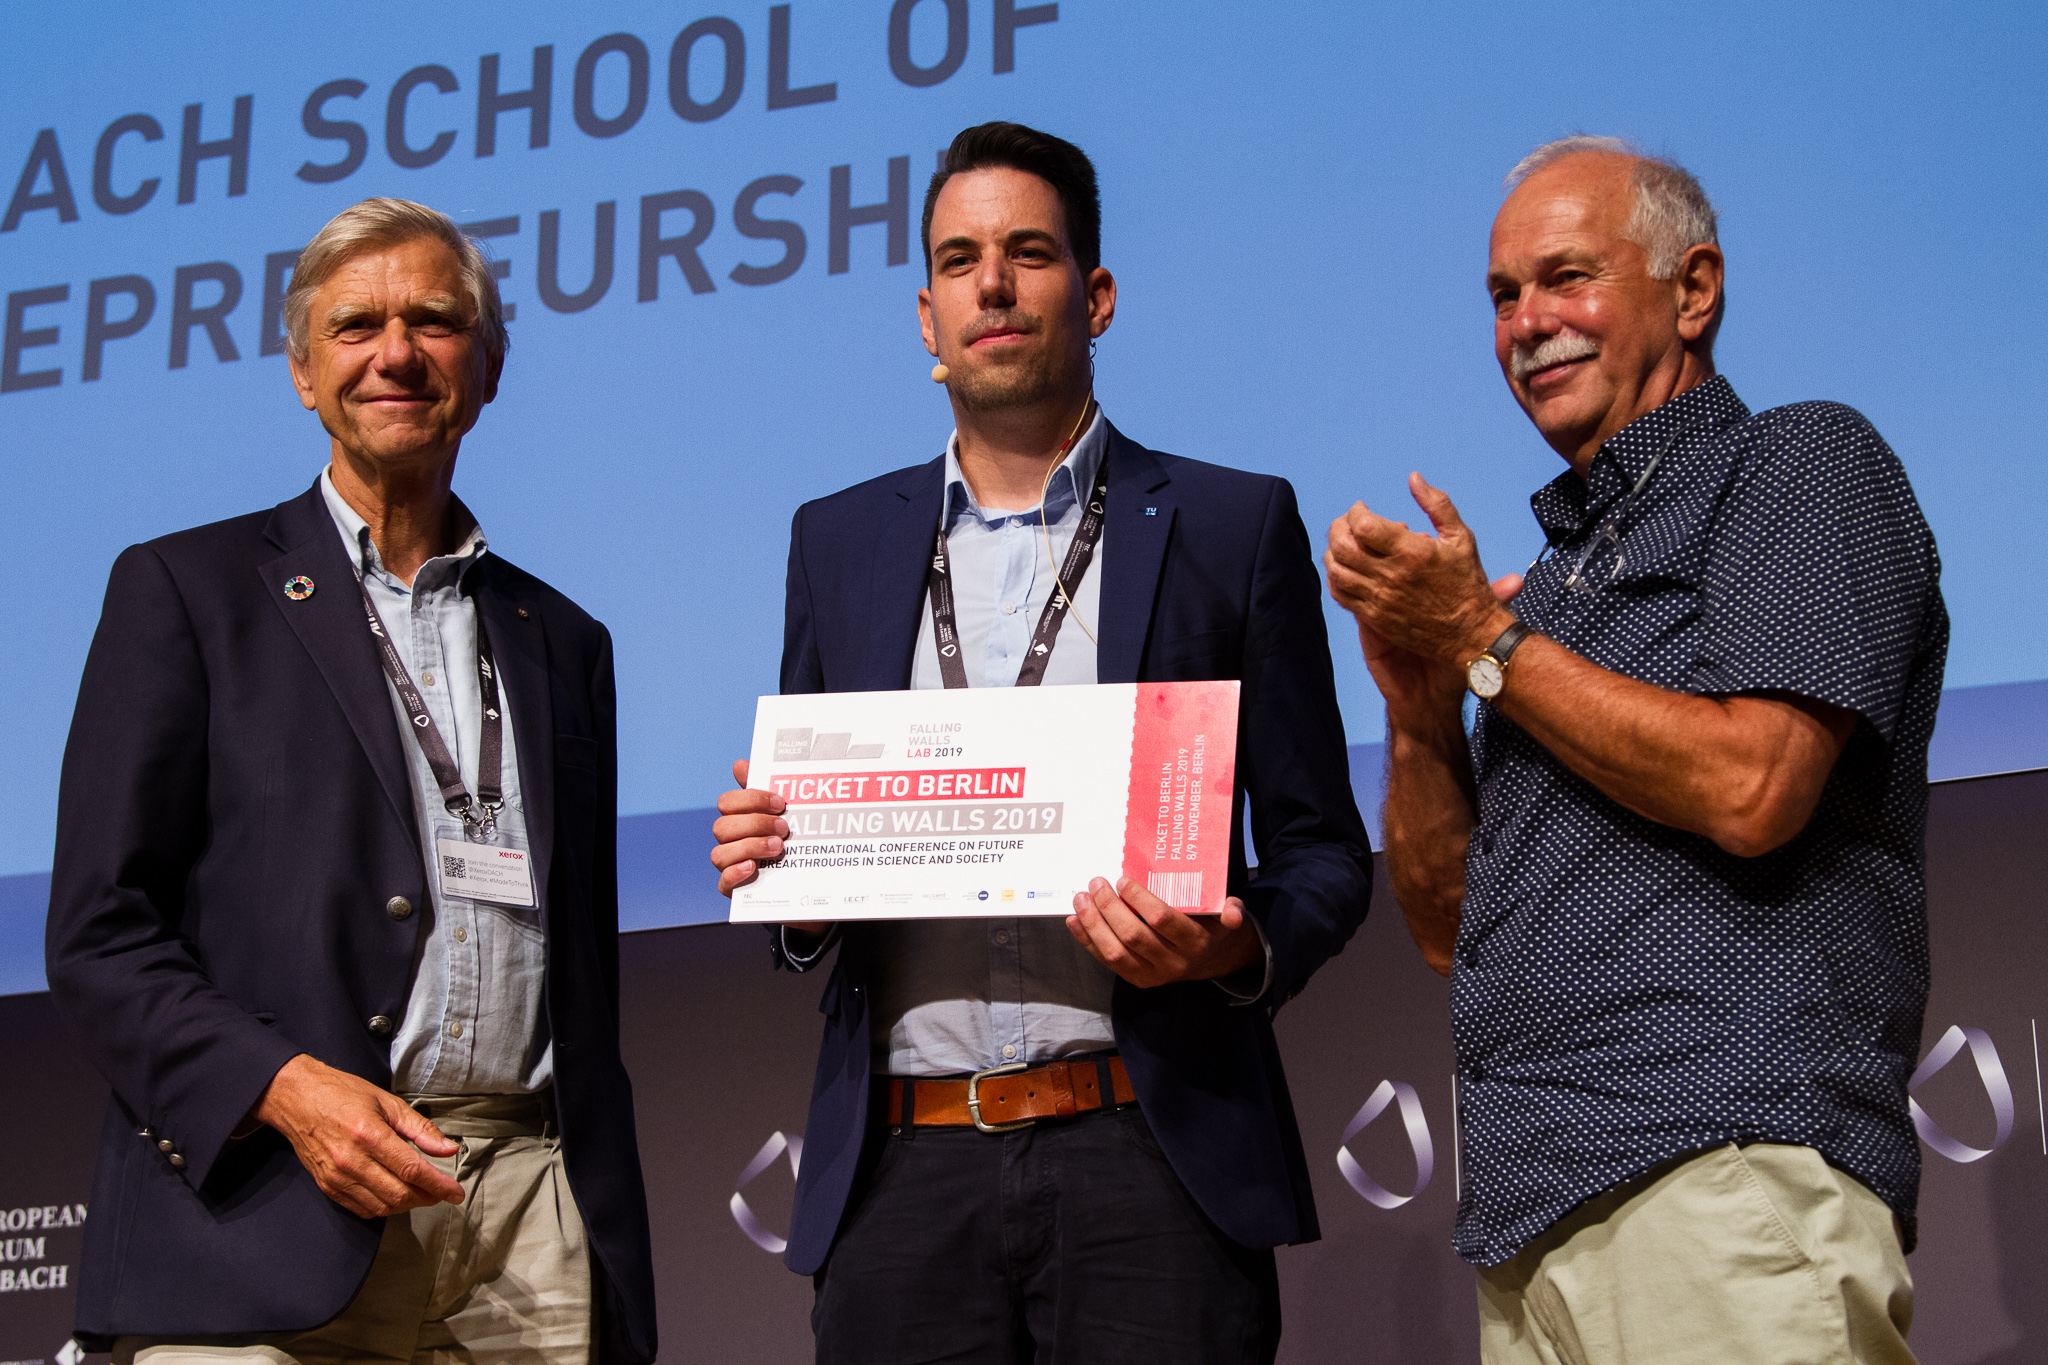 1st place at pitch competition @ European Forum Alpbach cover image